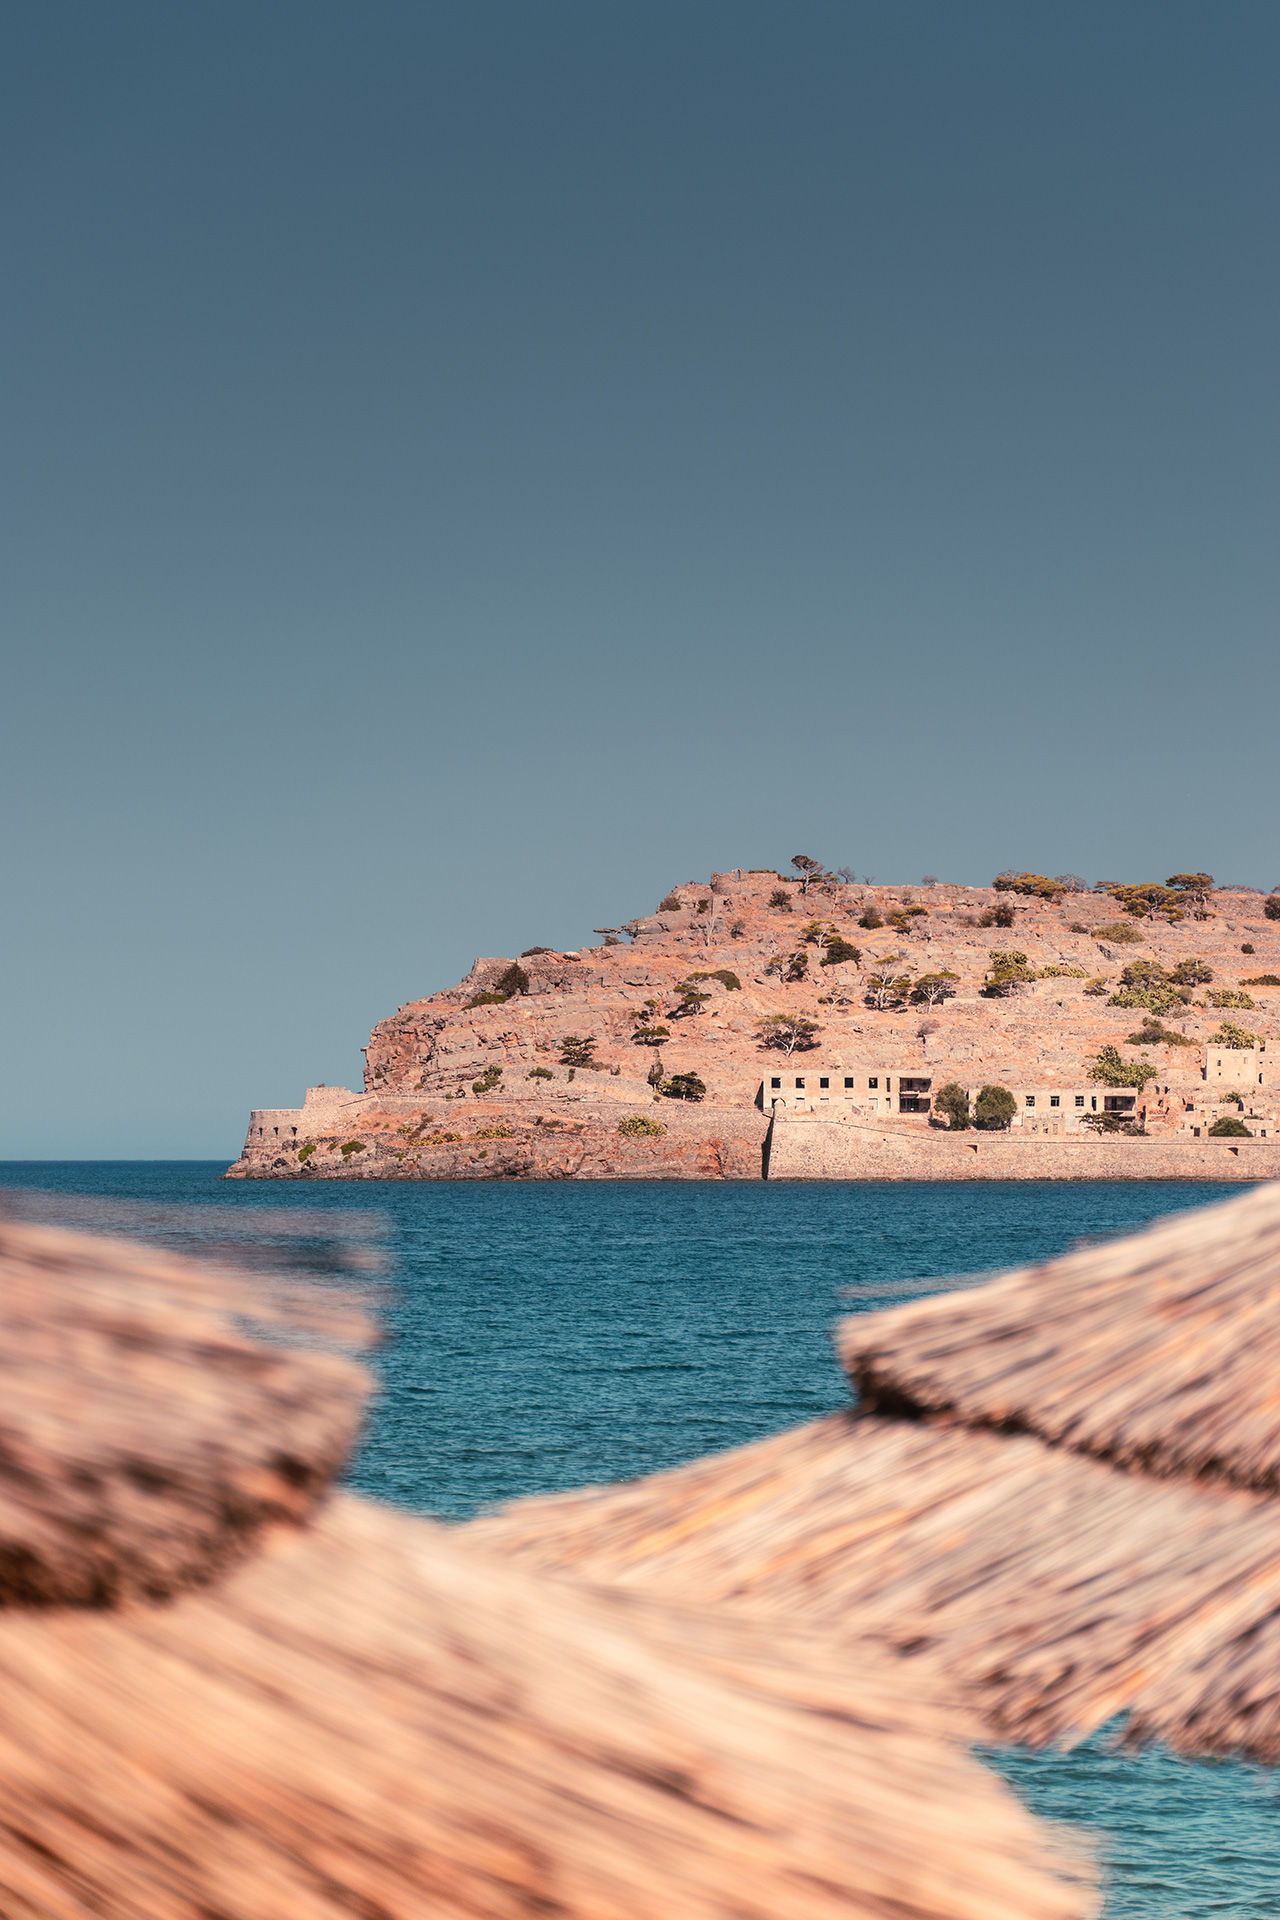 Taking a boat trip to Spinalonga is to explore an island with an intriguing past